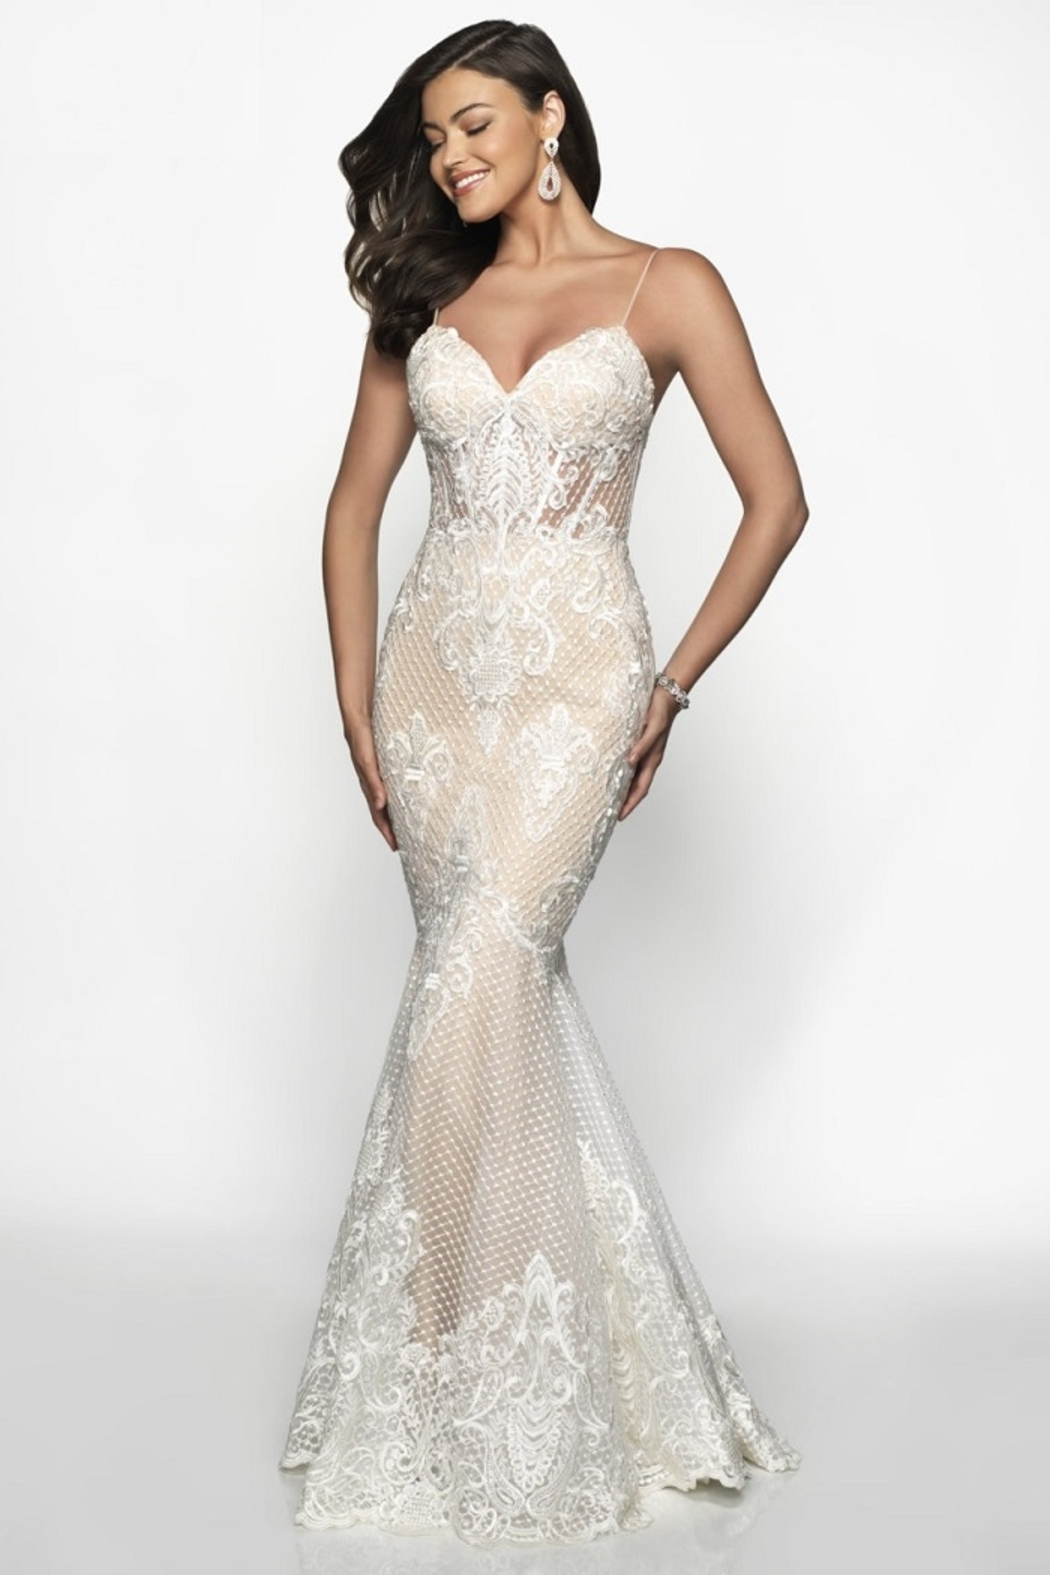 Flair New York Off White & Nude Lace Mermaid Bridal Gown - Main Image